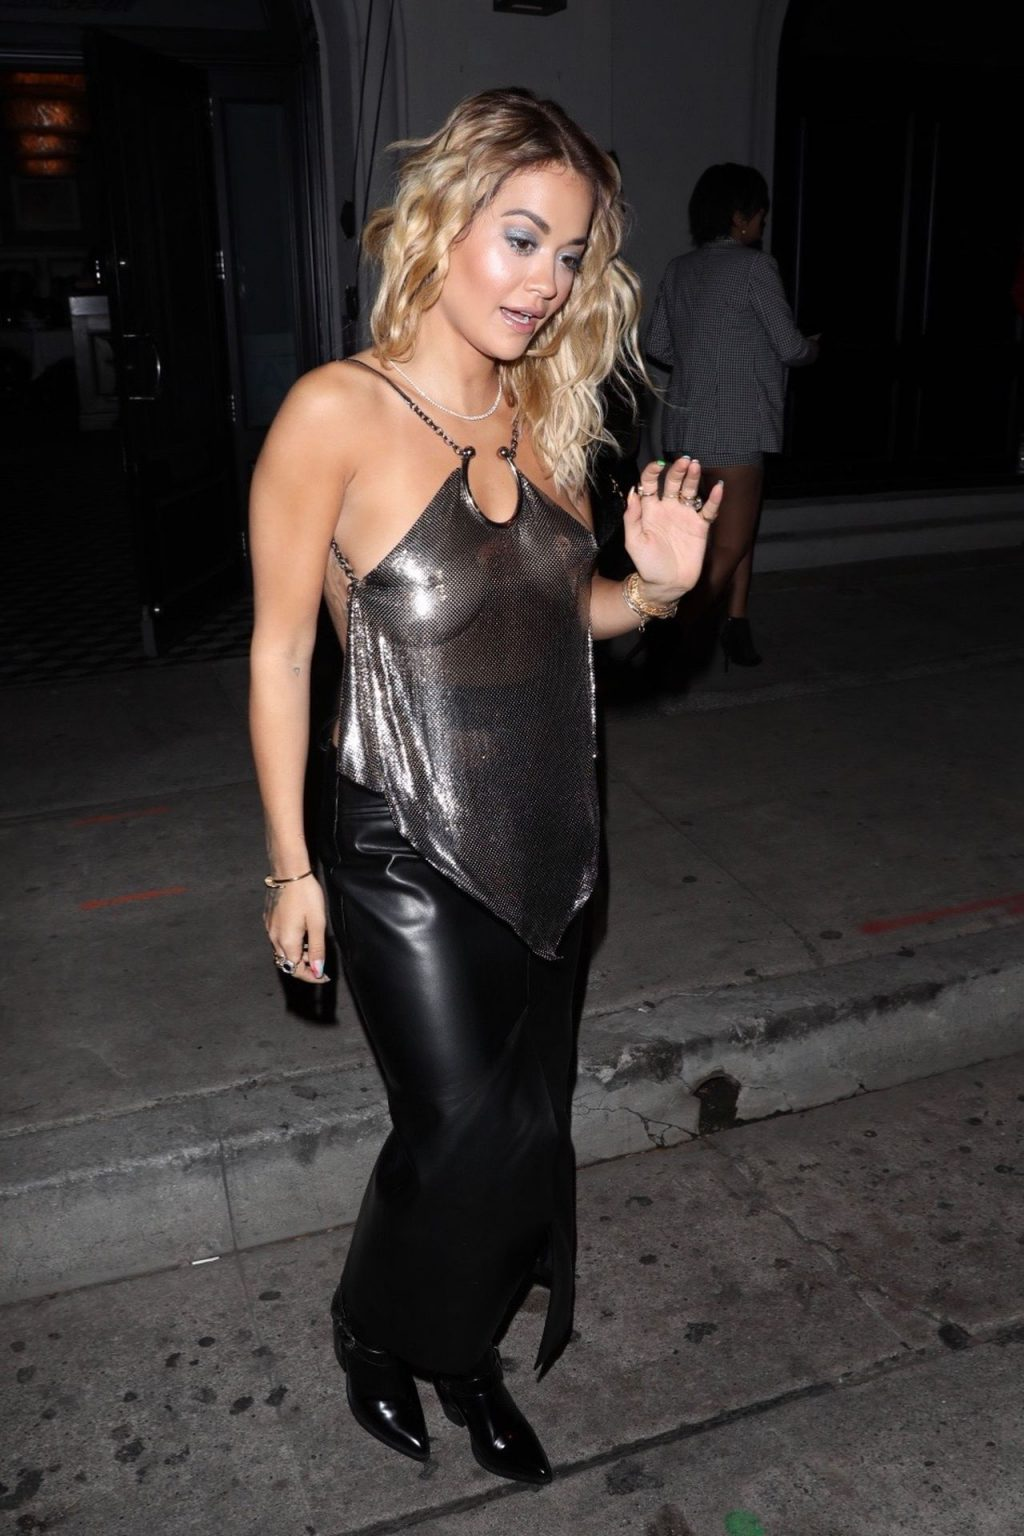 Rita Ora Wears a Revealing Top in West Hollywood (43 Photos)